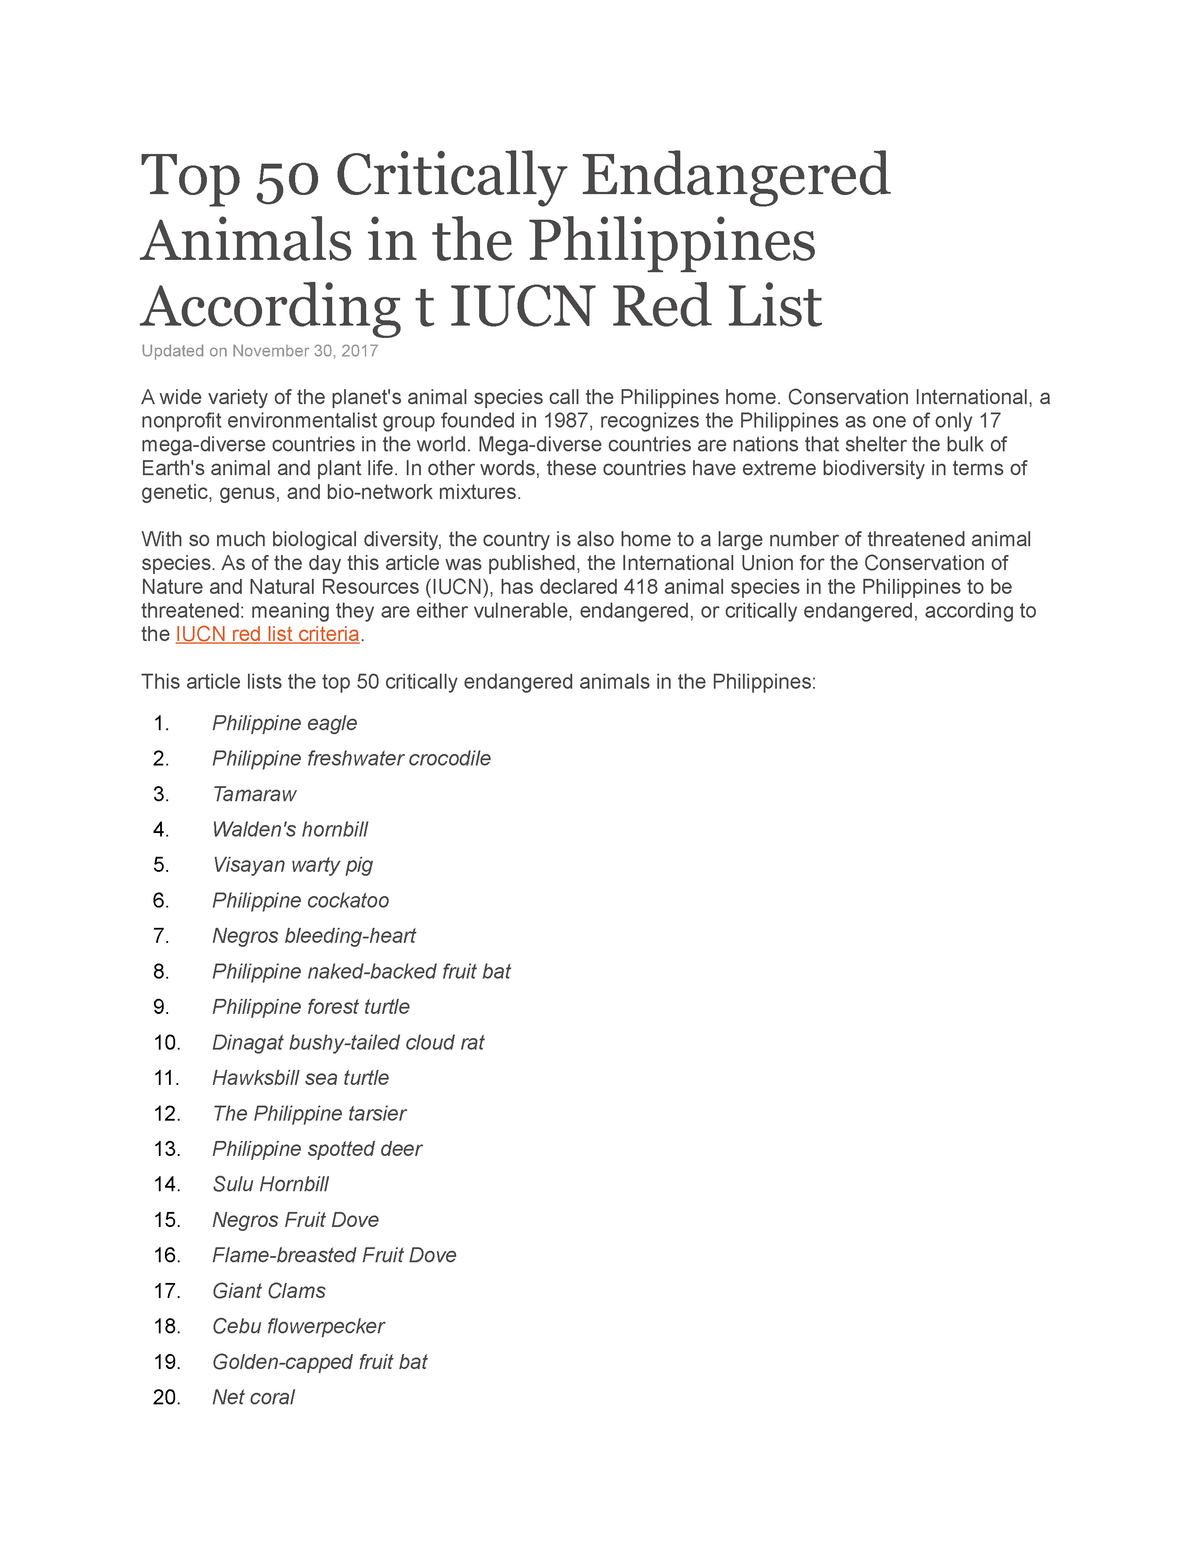 Top 50 Critically Endangered Animals in the Philippines